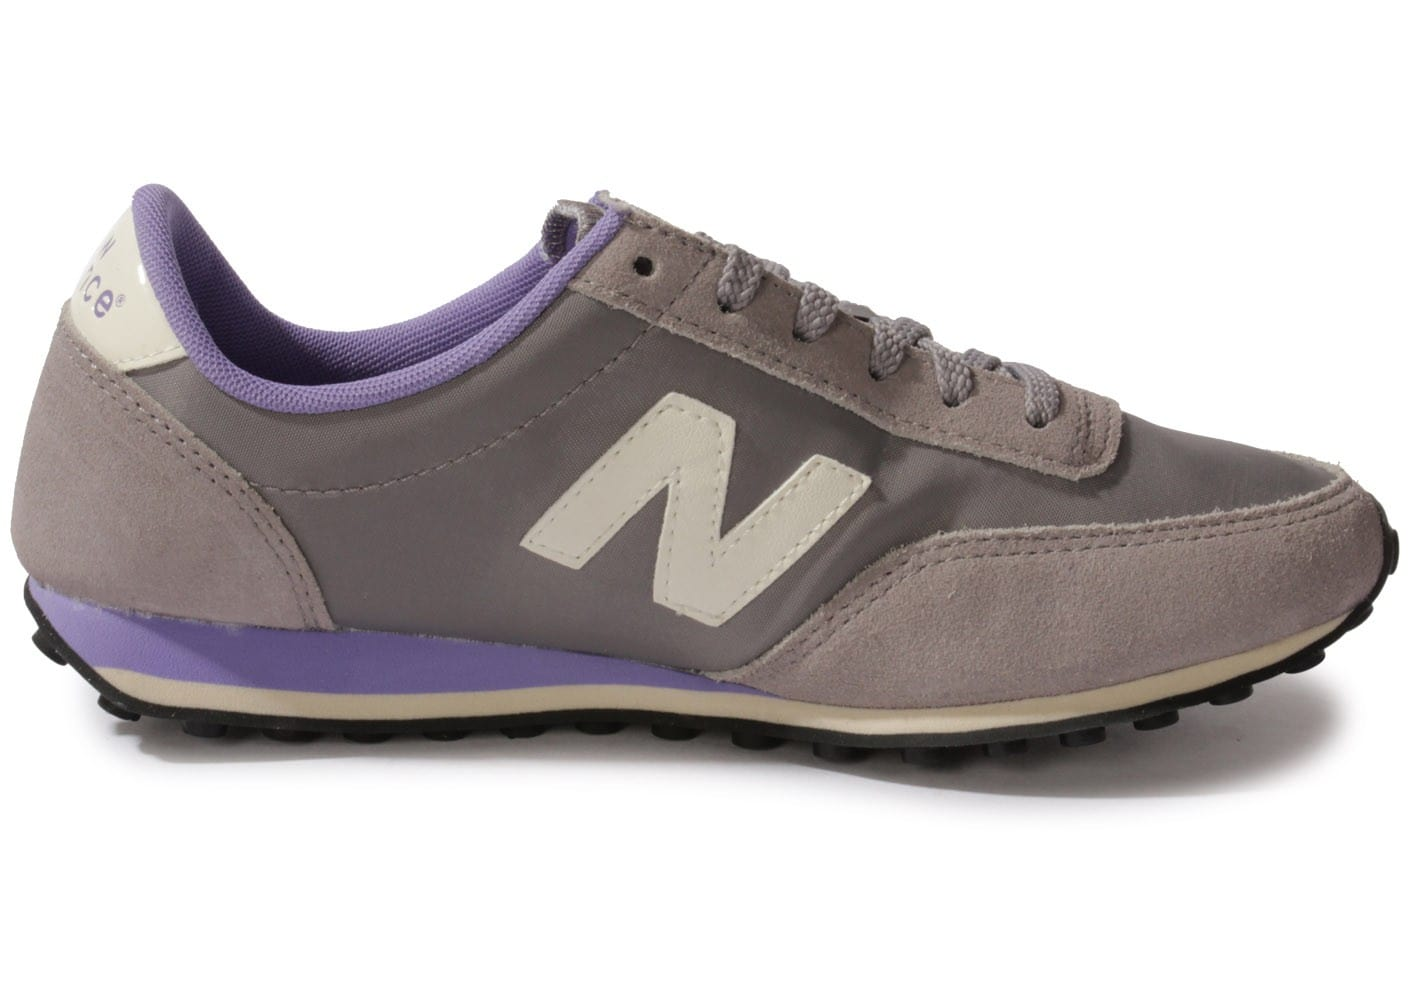 new balance ul410 suede grise mauve chaussures chaussures chausport. Black Bedroom Furniture Sets. Home Design Ideas